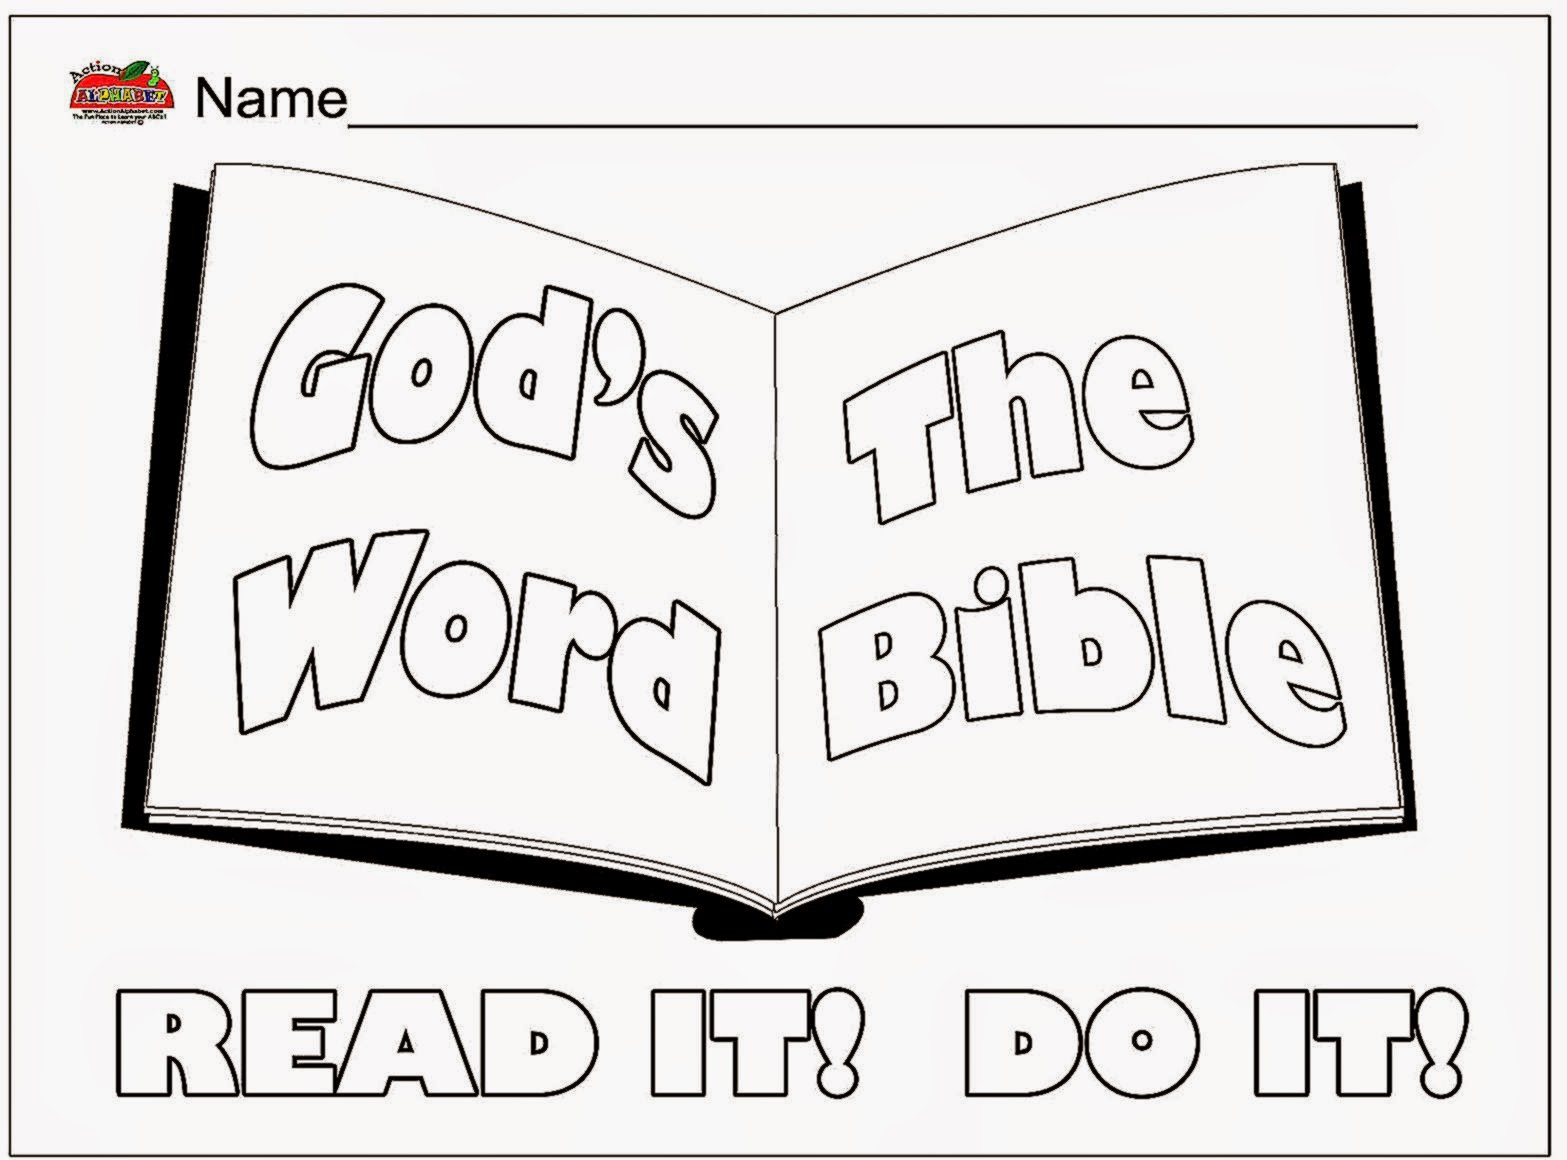 Adult Best Printable Bible Coloring Pages For Preschoolers Gallery Images best bible alphabet coloring book jesus free preschool pages printable wise gallery images